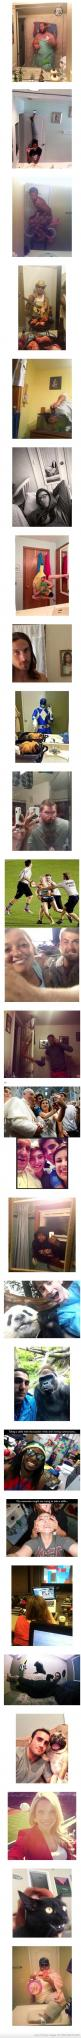 I don't want to see selfies unless they look like these.: Awesome Selfies, Weirdest Selfies, Ultimate Selfies, Amazing Selfies, Funny Selfie Quotes, Epic Selfies